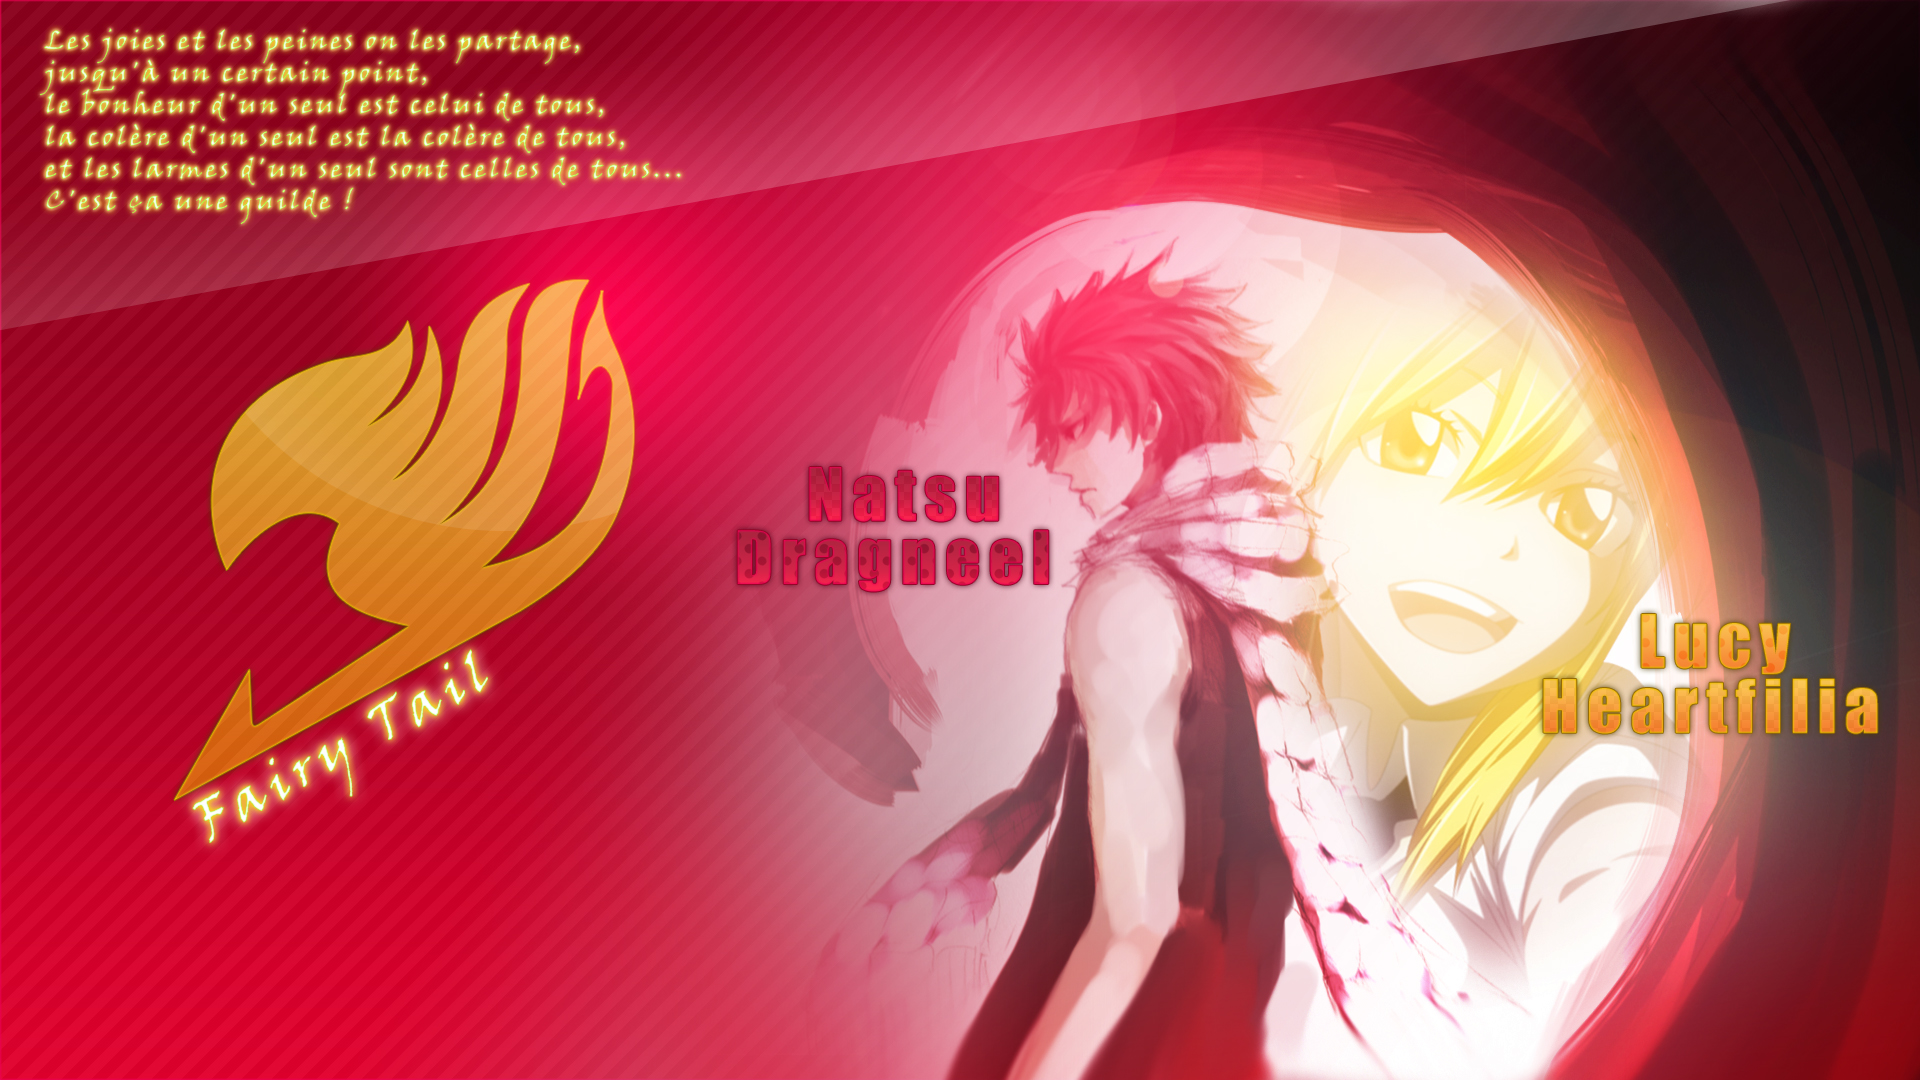 Natsu Lucy Fairy Tail Wallpaper by SaenyanEin 1920x1080